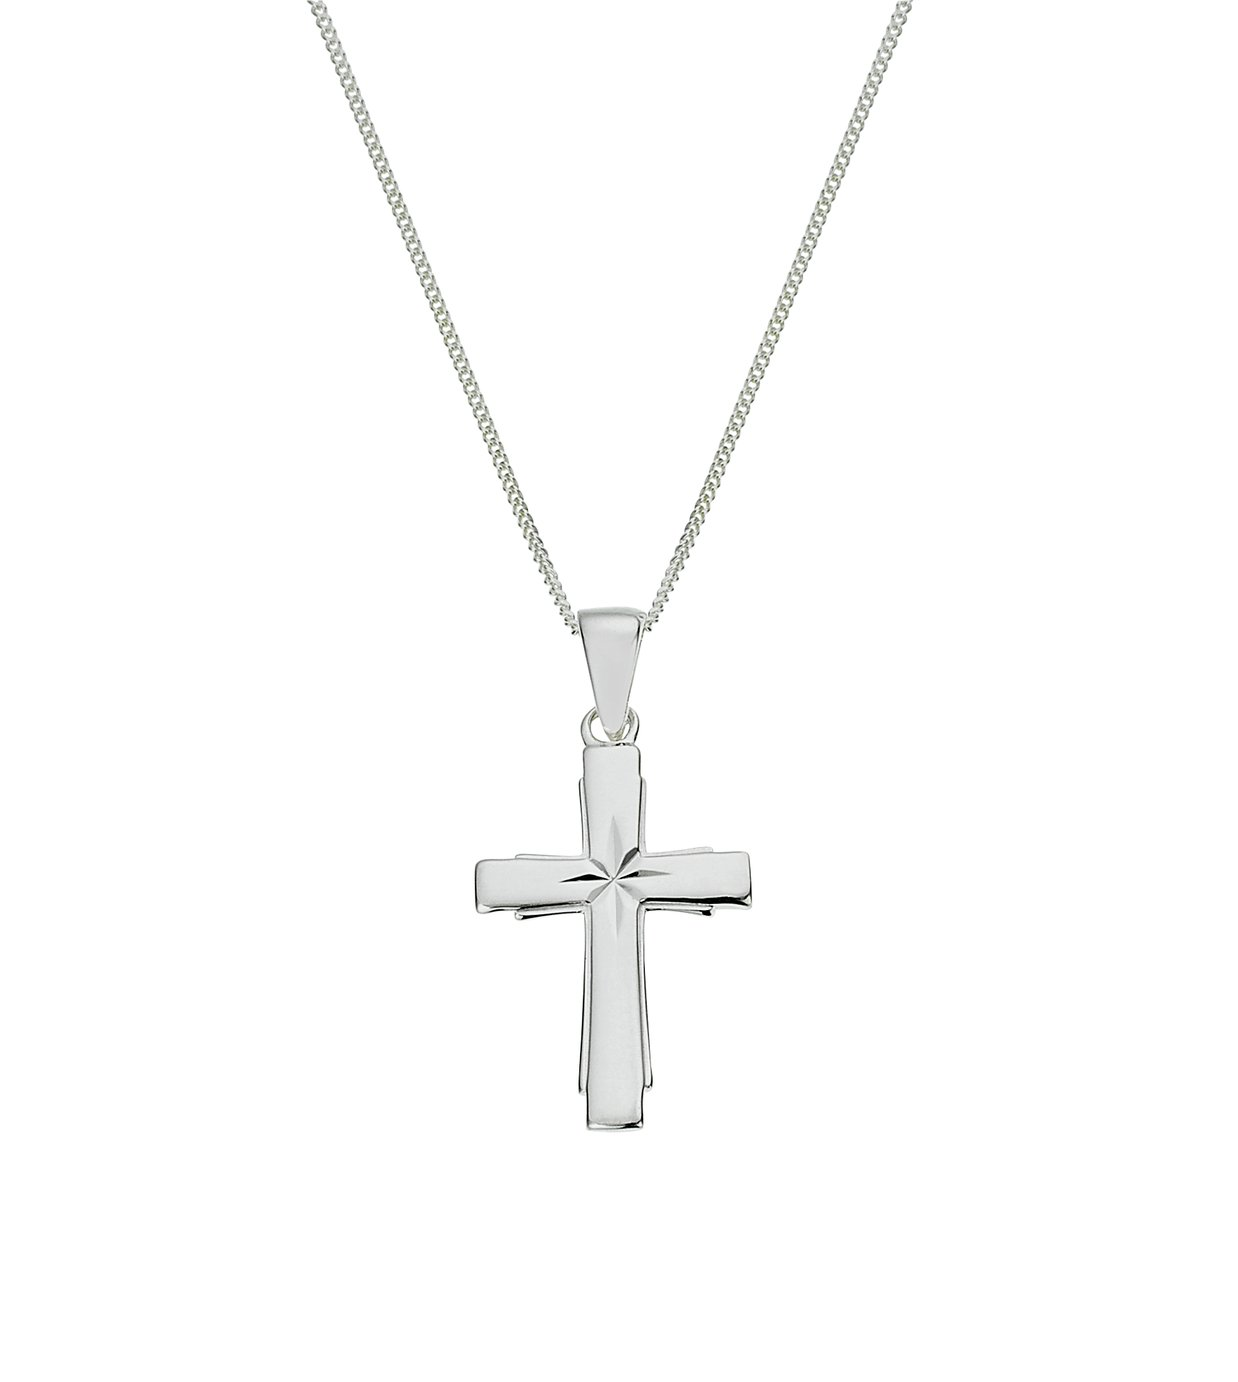 Revere Silver Cross Diamond Cut Pendant 18 Inch Necklace